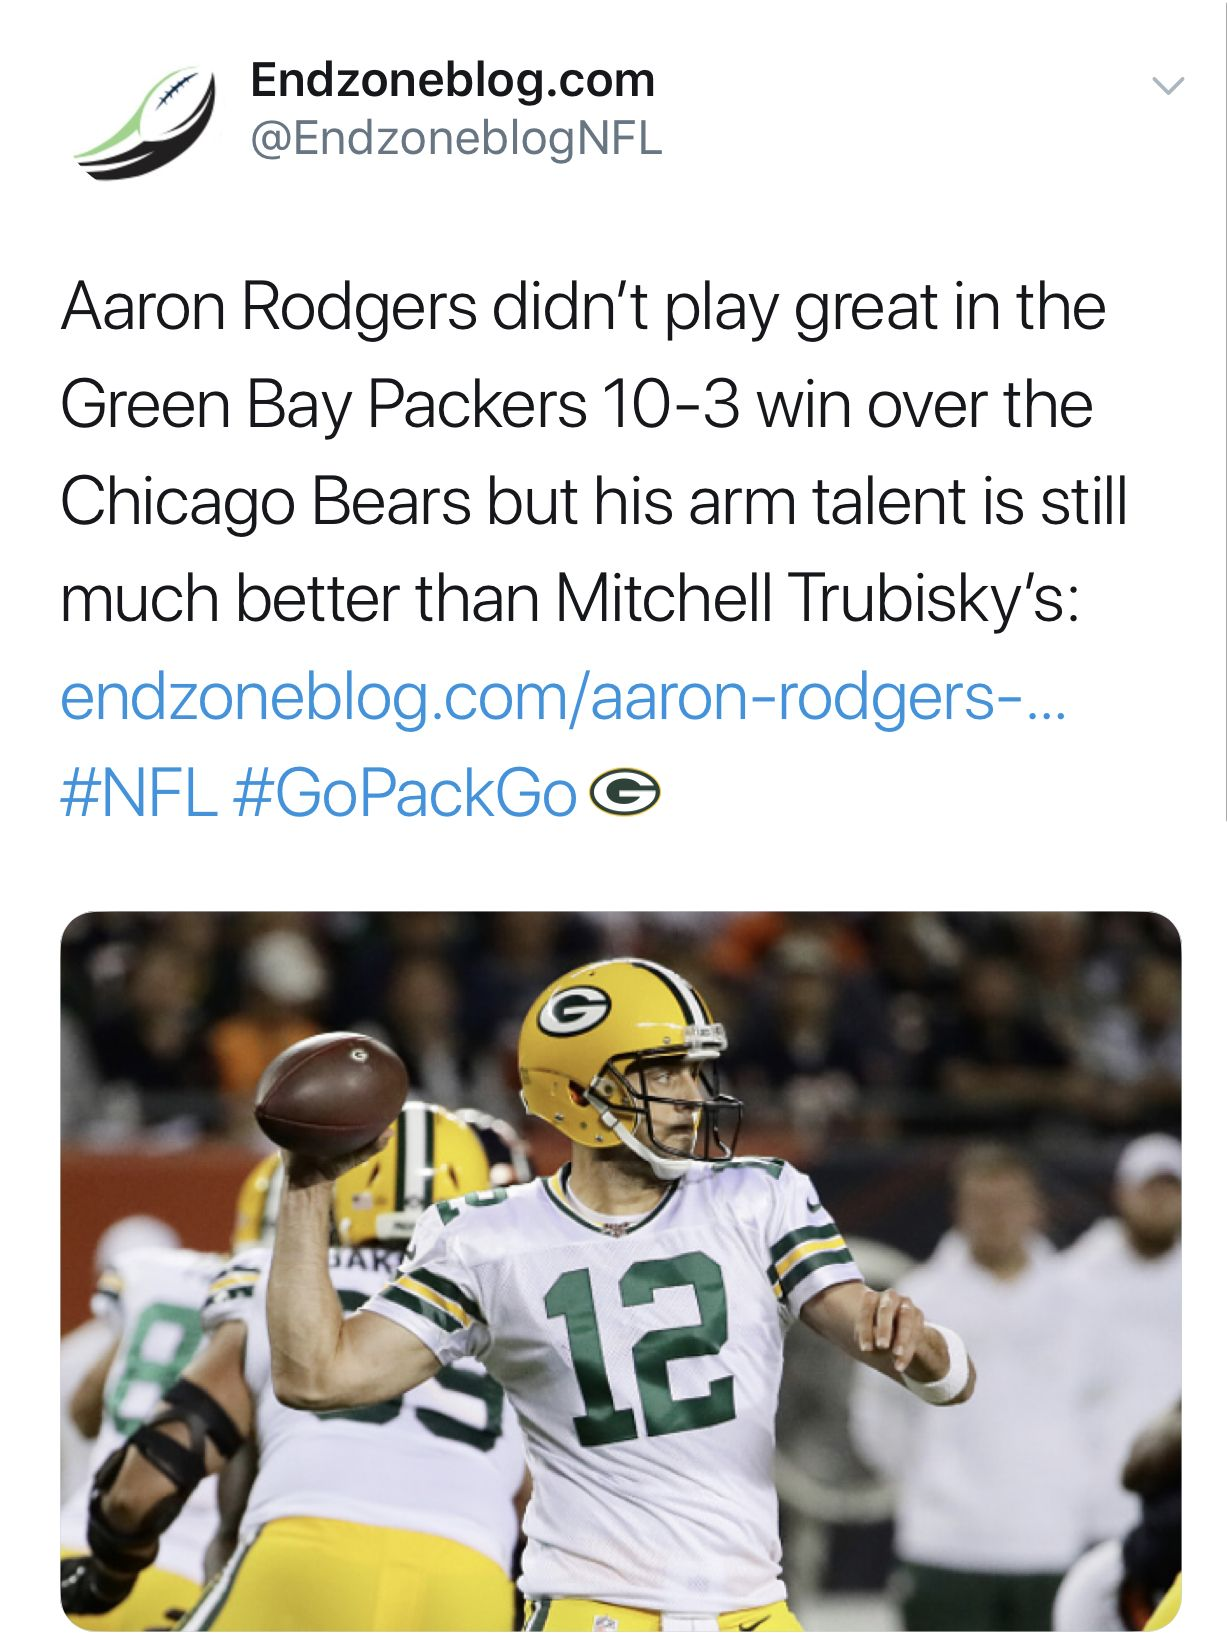 Aaron Rodgers Didn T Play Great But His Arm Talent Is Much Better Than Trubisky S Aaron Rodgers Green Packers Football Streaming